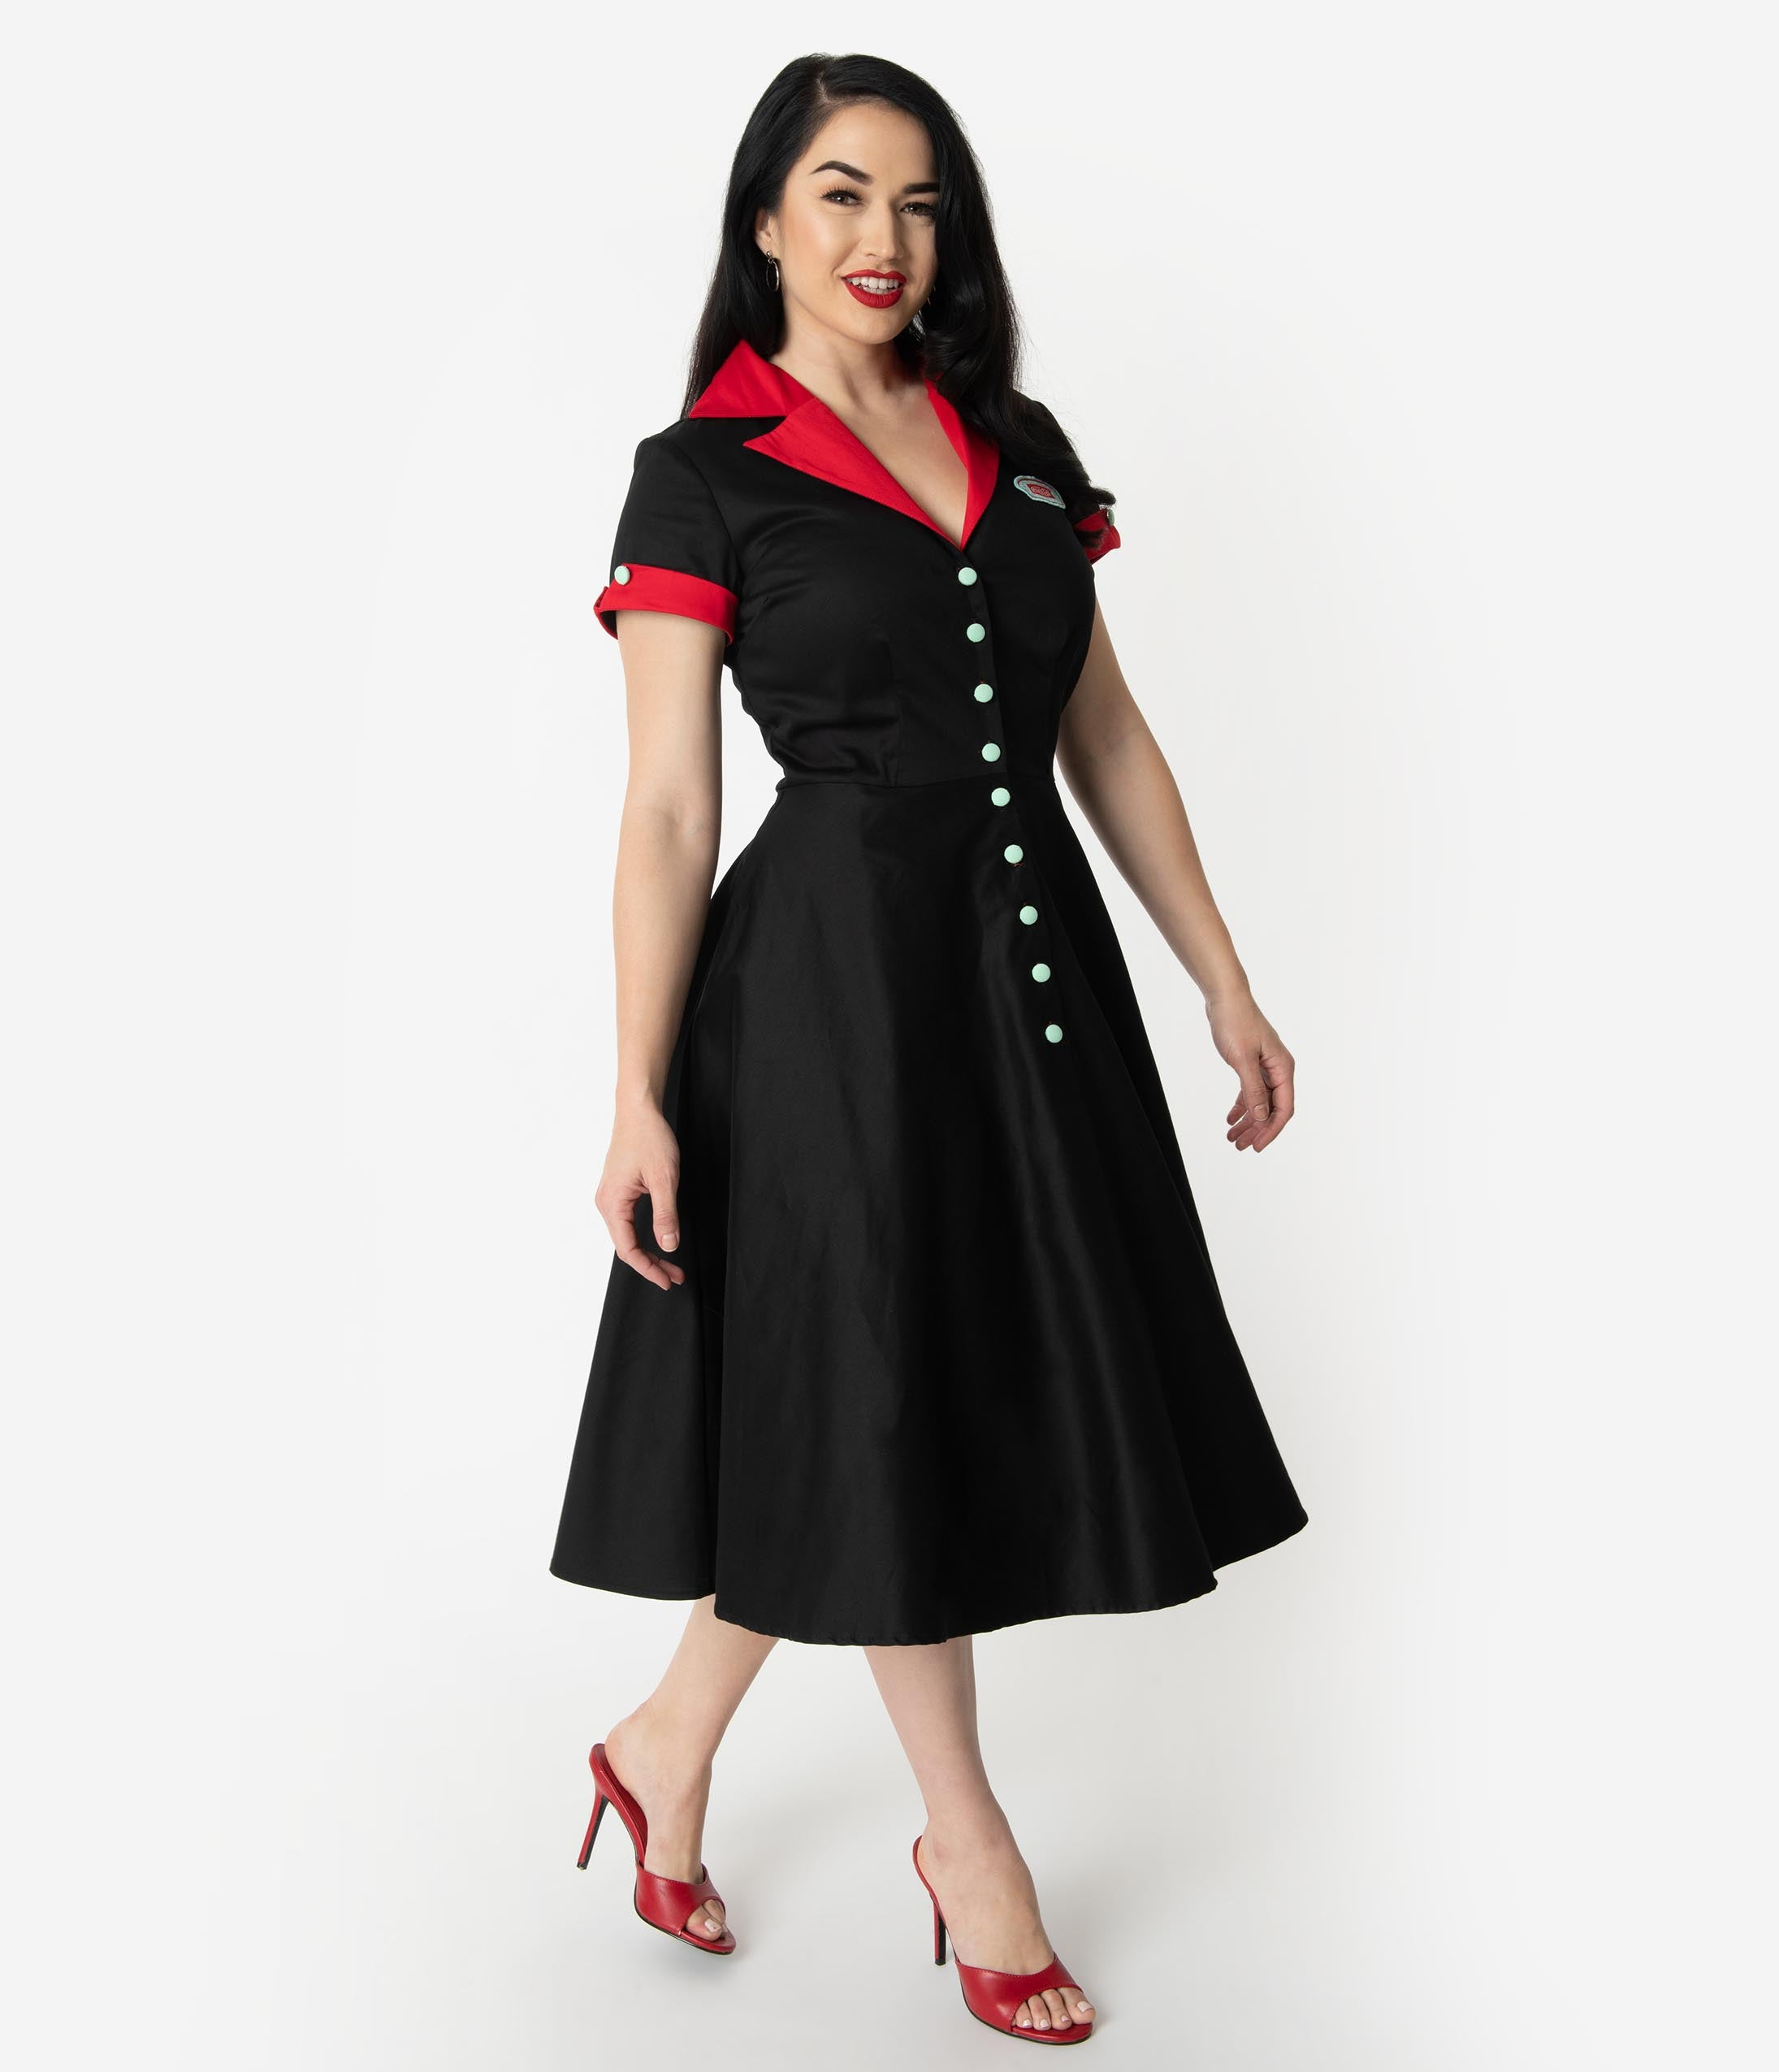 Hippie Costumes, Hippie Outfits Coca-Cola Collection By Unique Vintage 1950S Black  Red Fizzy Swing Diner Dress $118.00 AT vintagedancer.com